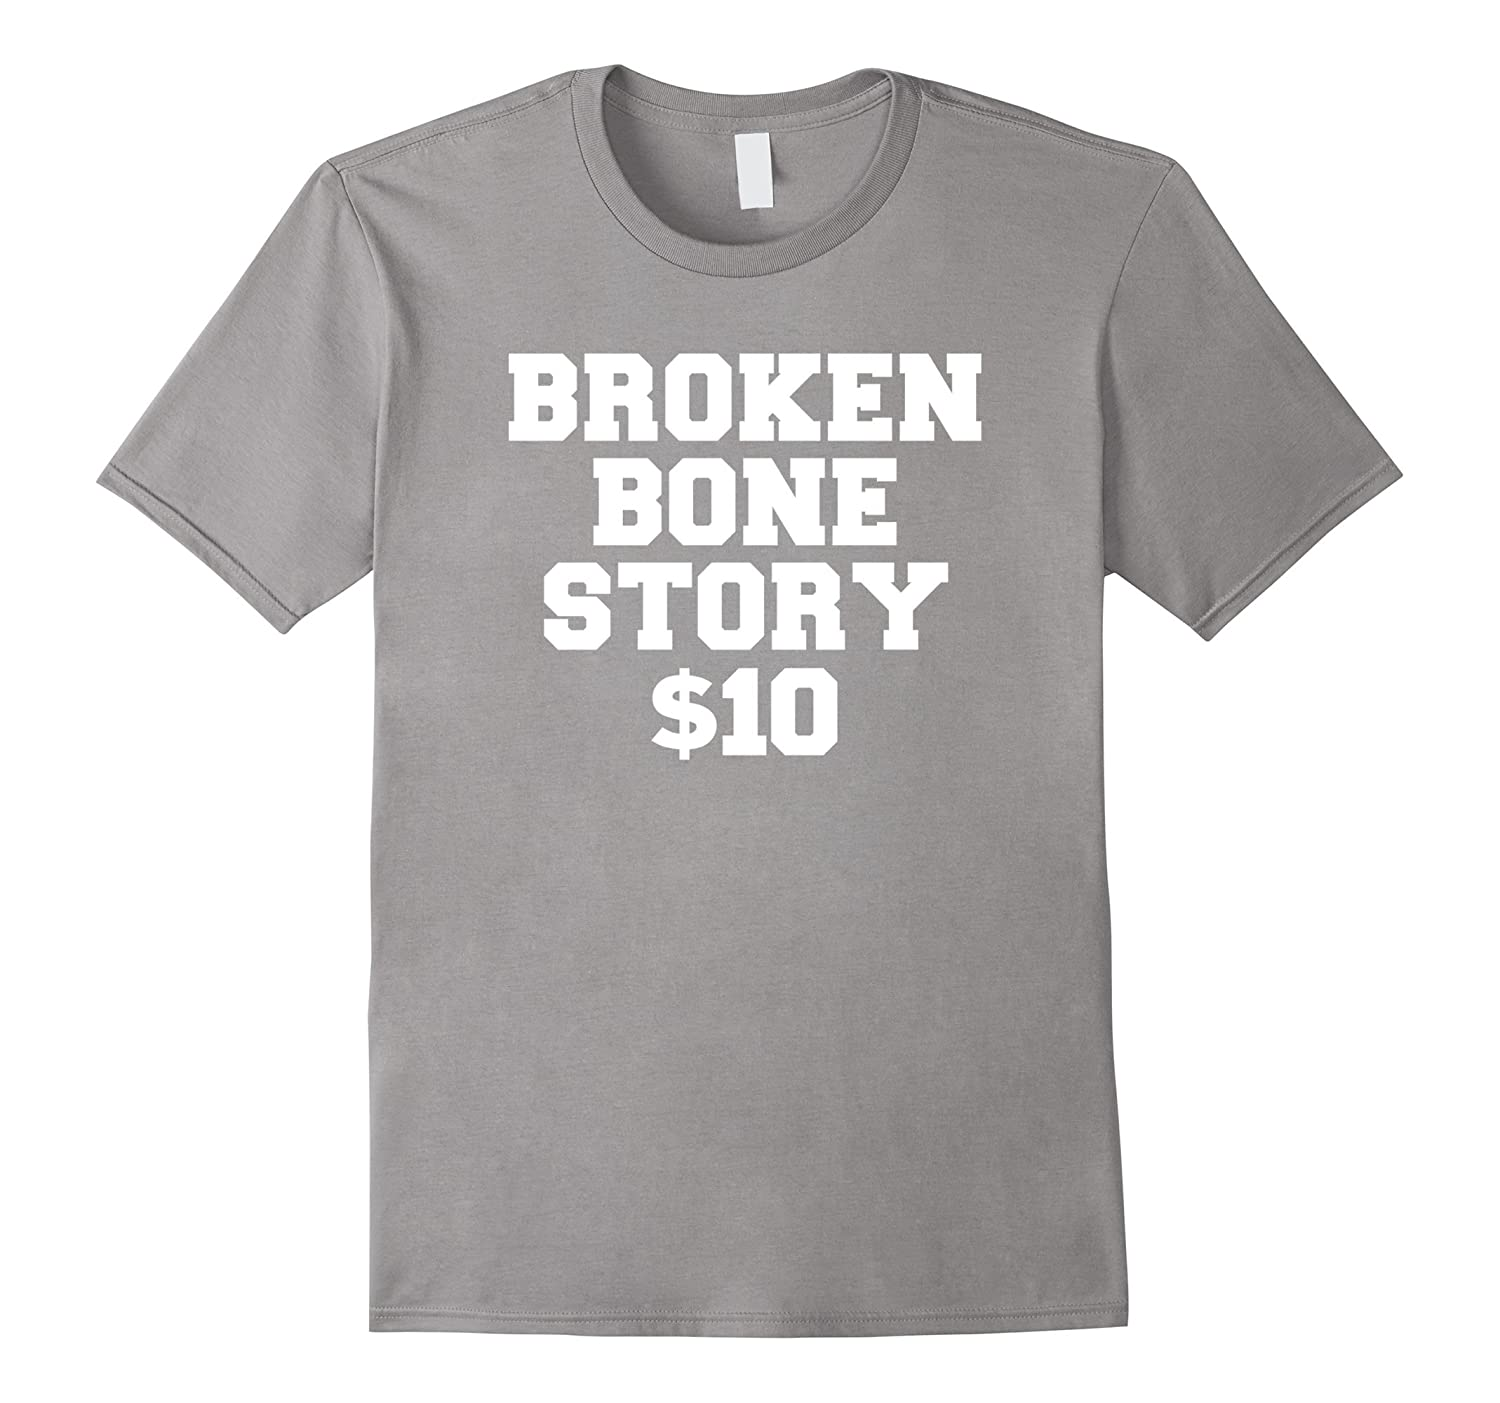 Broken Bone Story $10 - Get Well Soon Gift Shirt-T-Shirt